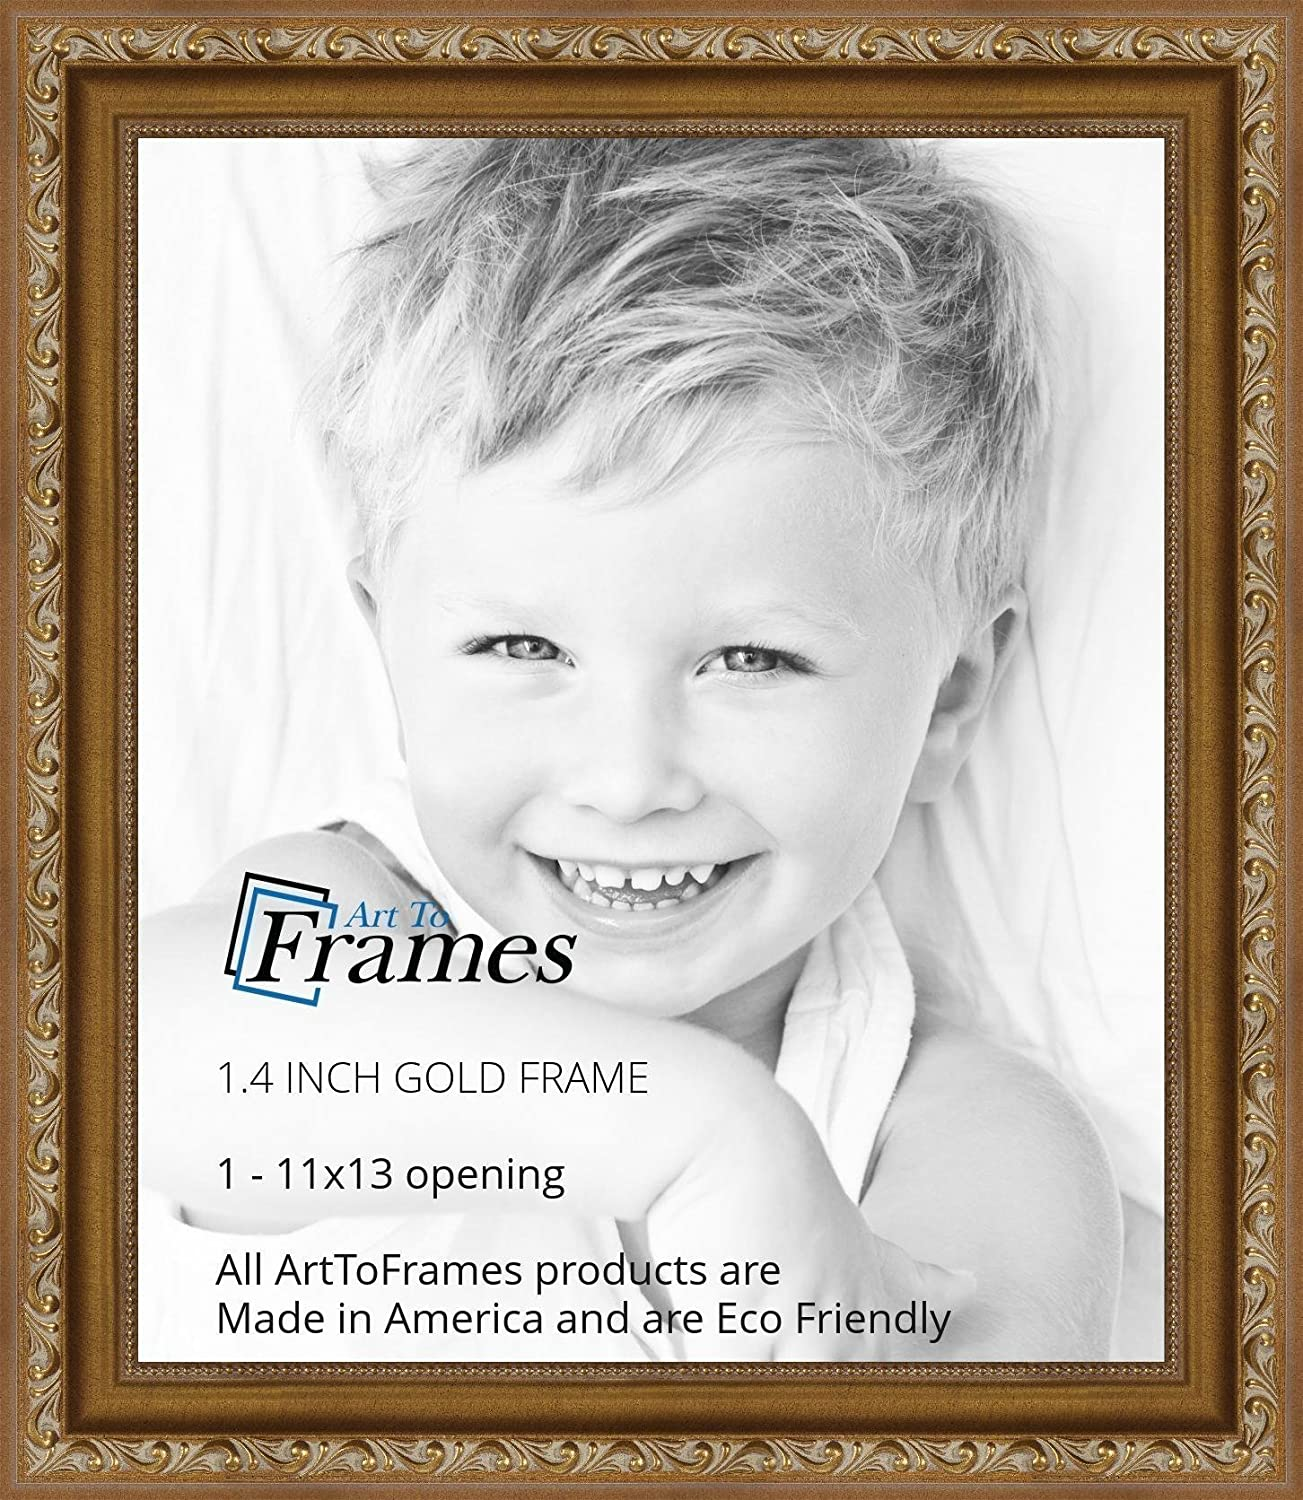 Amazon arttoframes 11x13 inch gold with beads wood picture amazon arttoframes 11x13 inch gold with beads wood picture frame 2womd10051 11x13 single frames jeuxipadfo Image collections